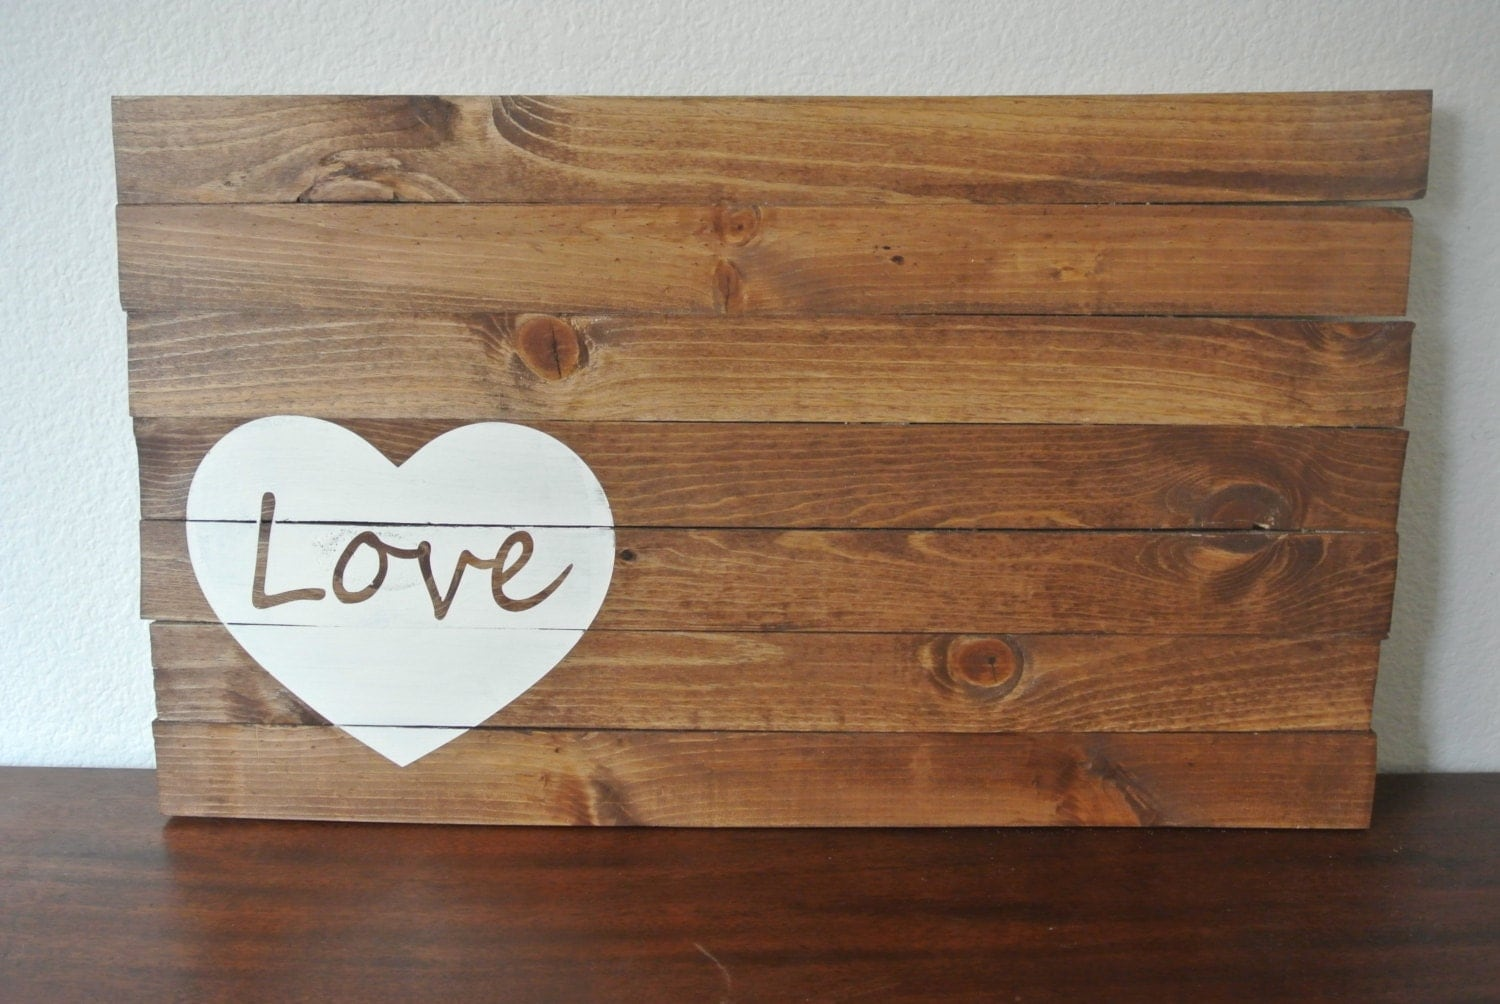 267 best ideas about Valentine's Day Door / Porch Ideas on ... |Valentine Hand Painted Wood Signs